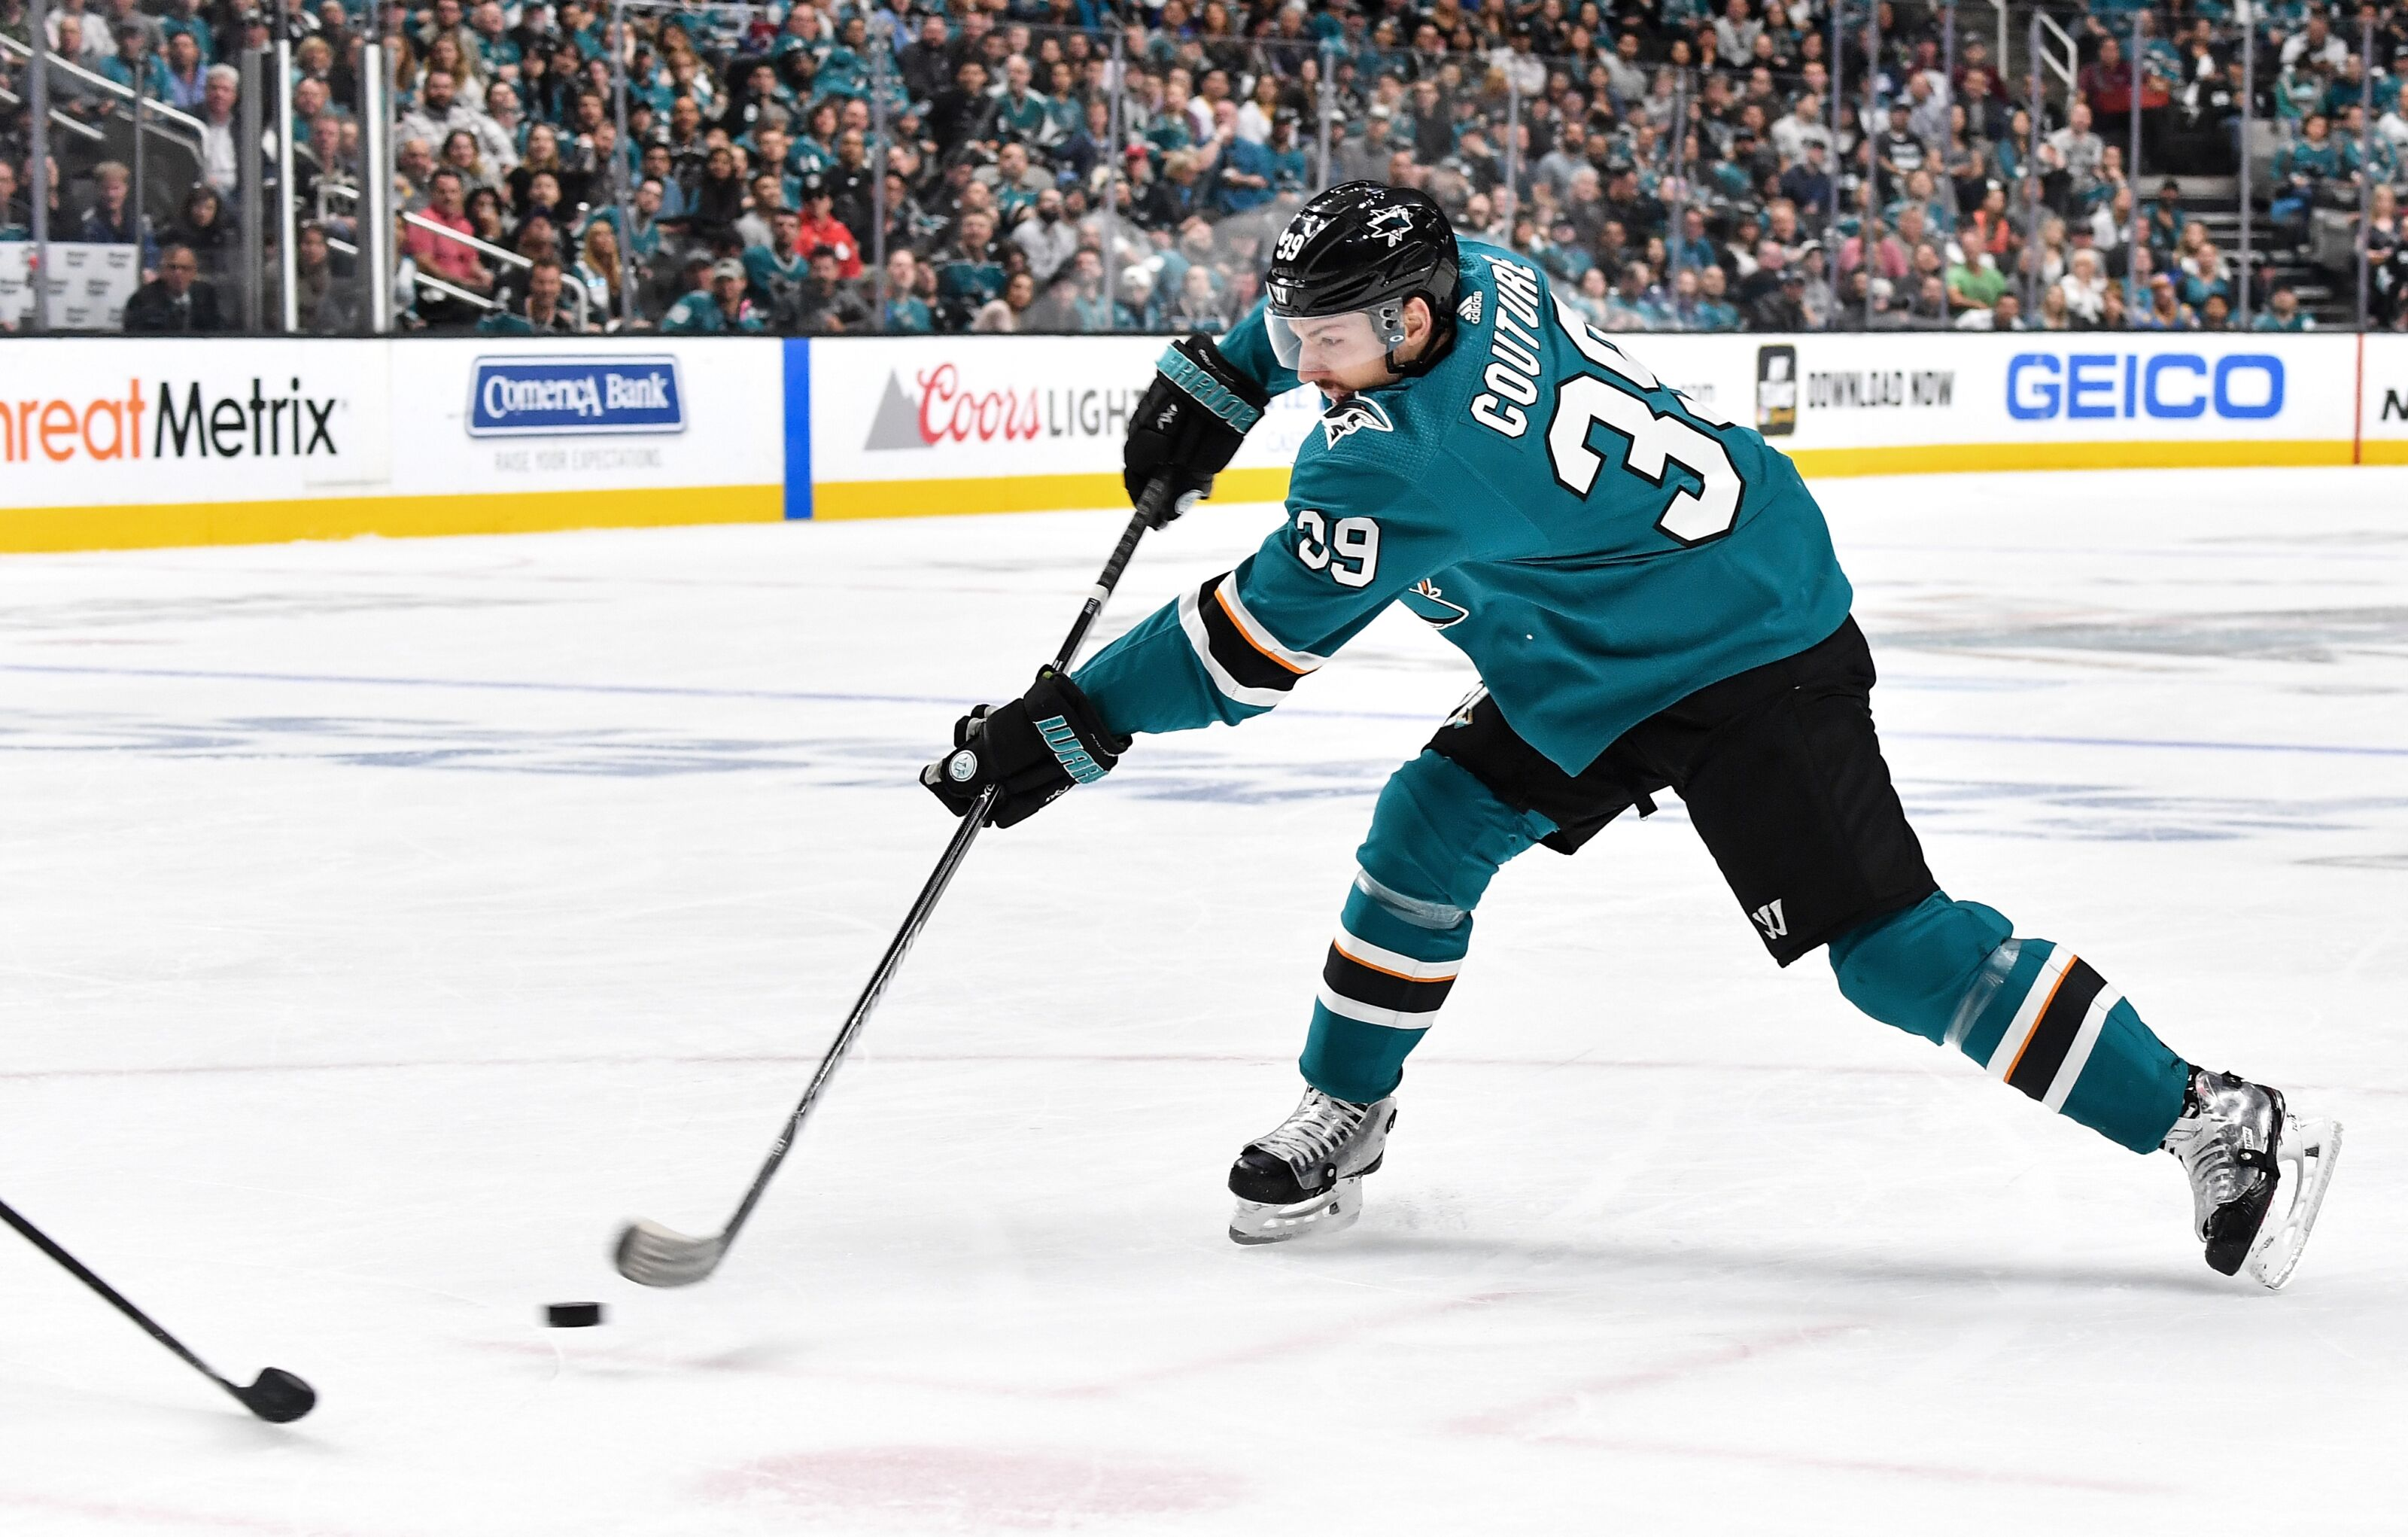 San Jose Sharks Sunday Subjects: Can they Keep Scoring at this Pace?